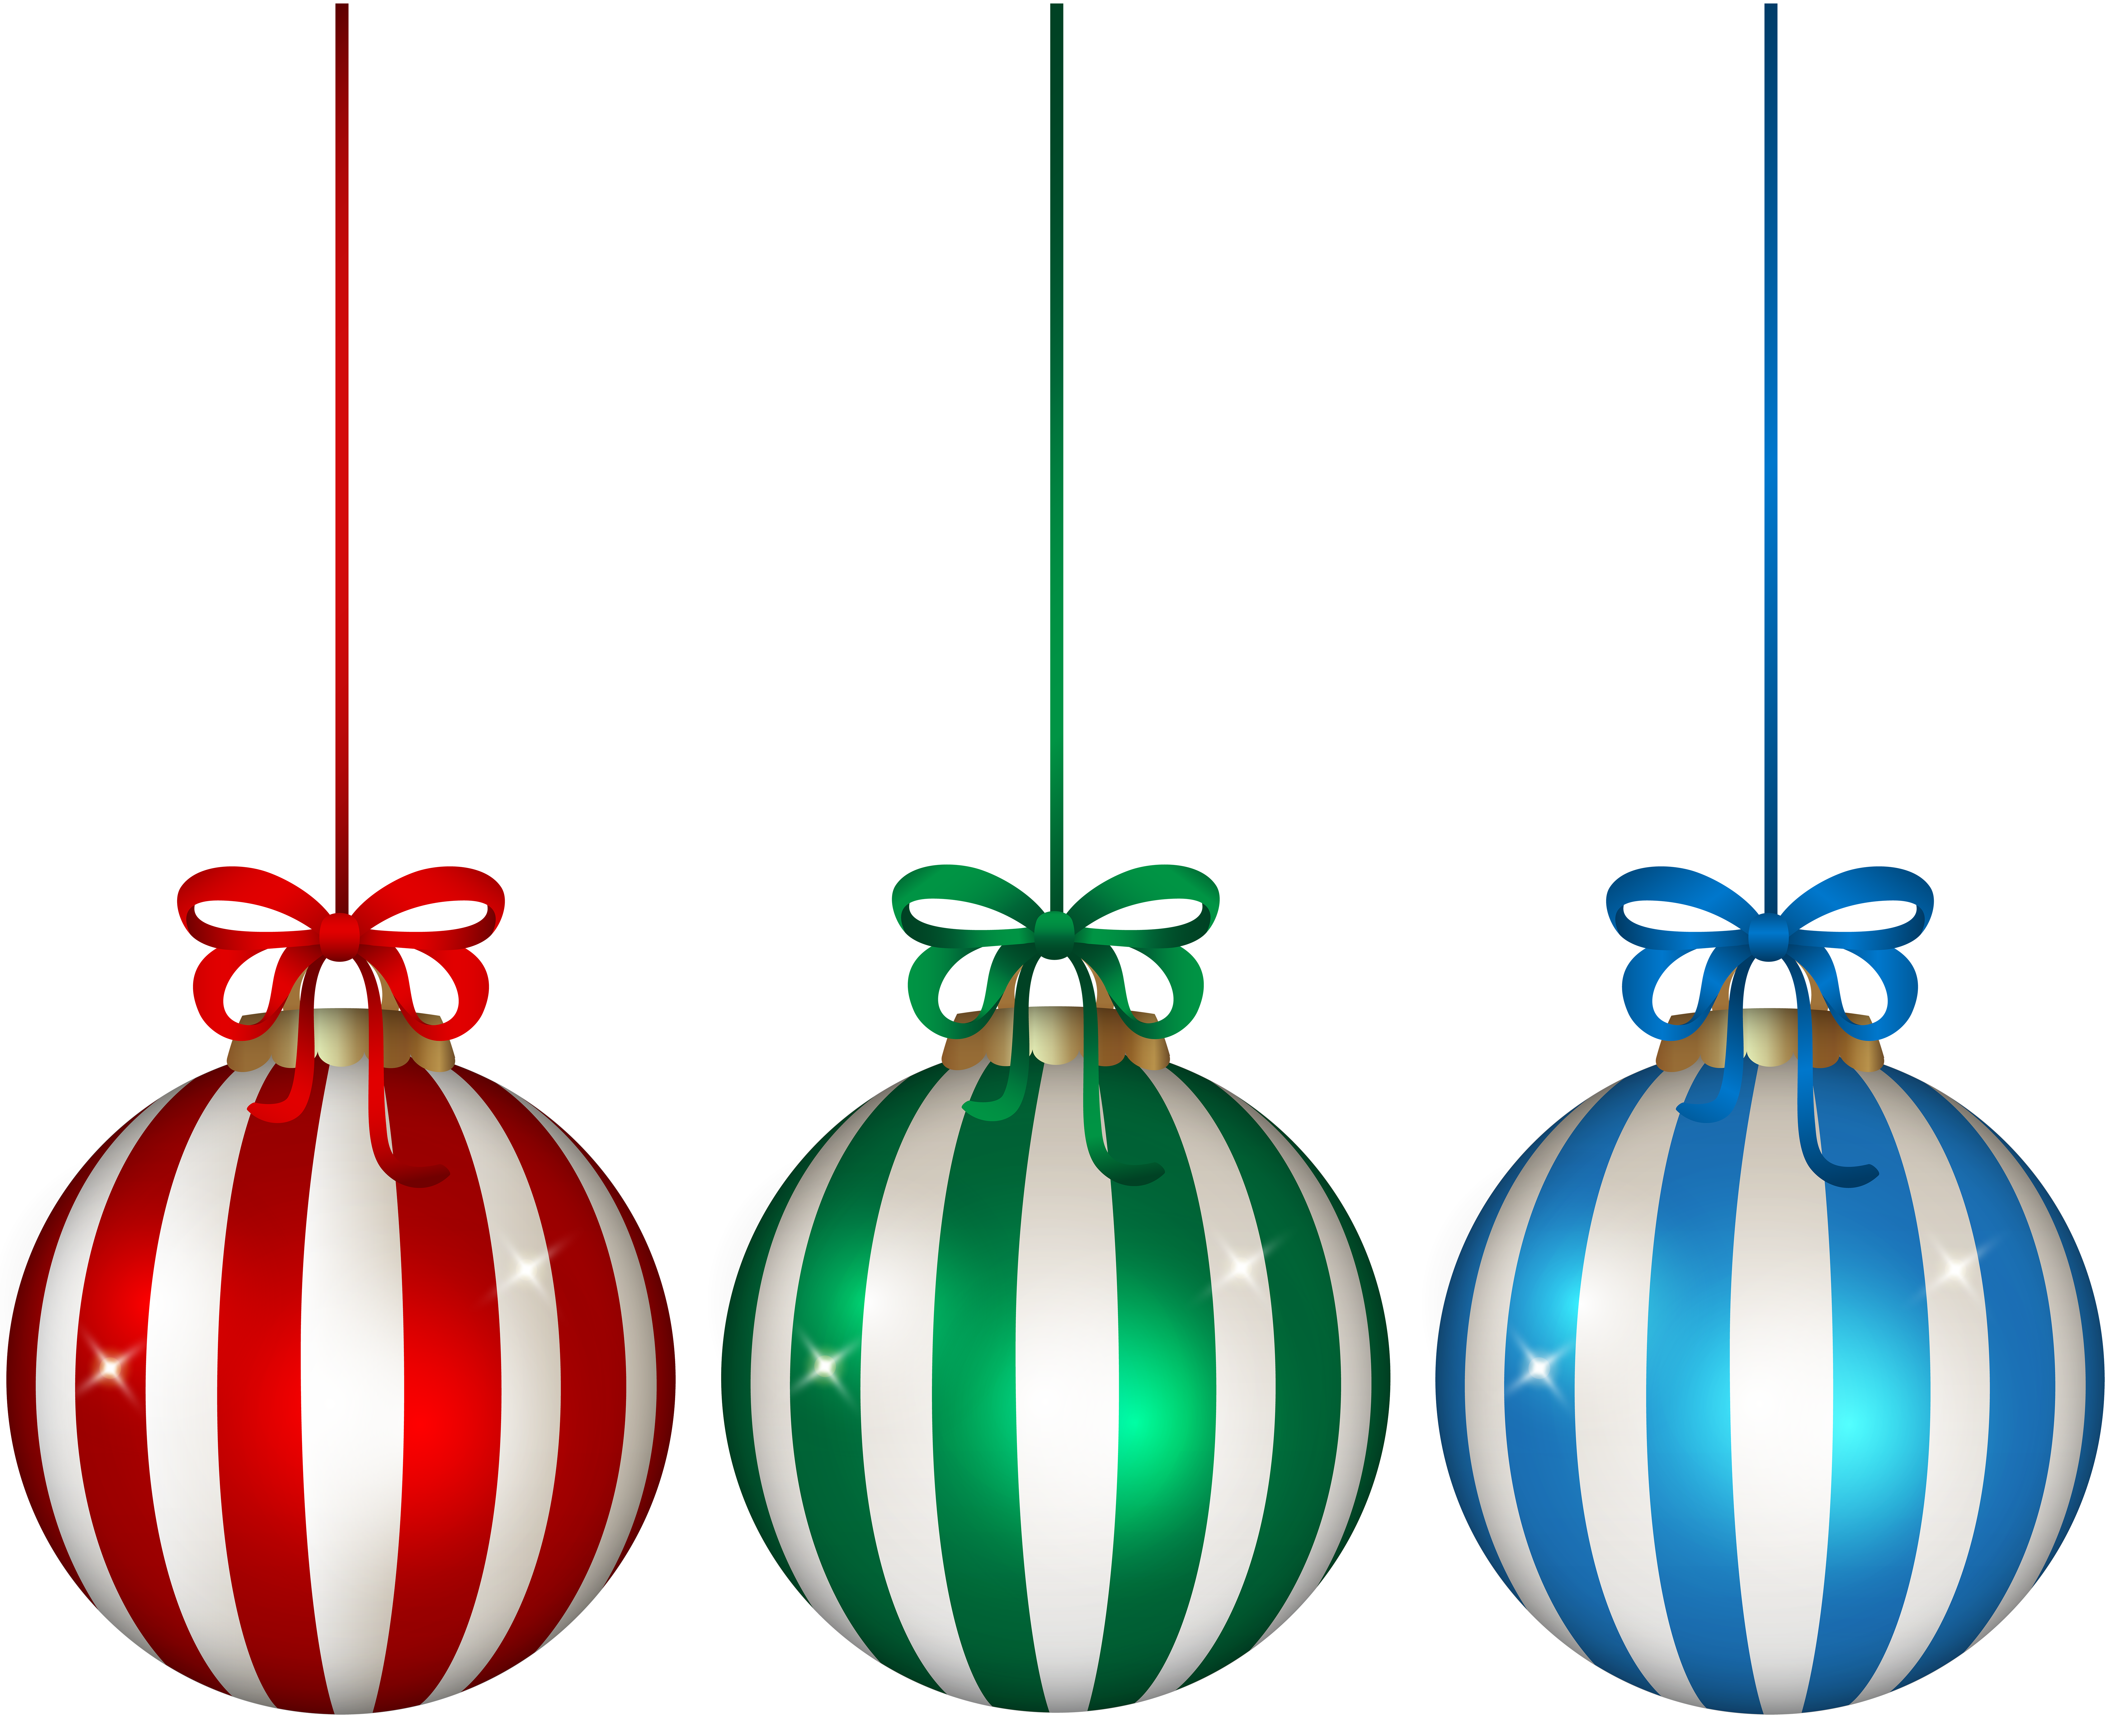 Hanging christmas ornament clipart image freeuse Christmas Hanging Ornament Set Clip Art Image | Gallery ... image freeuse